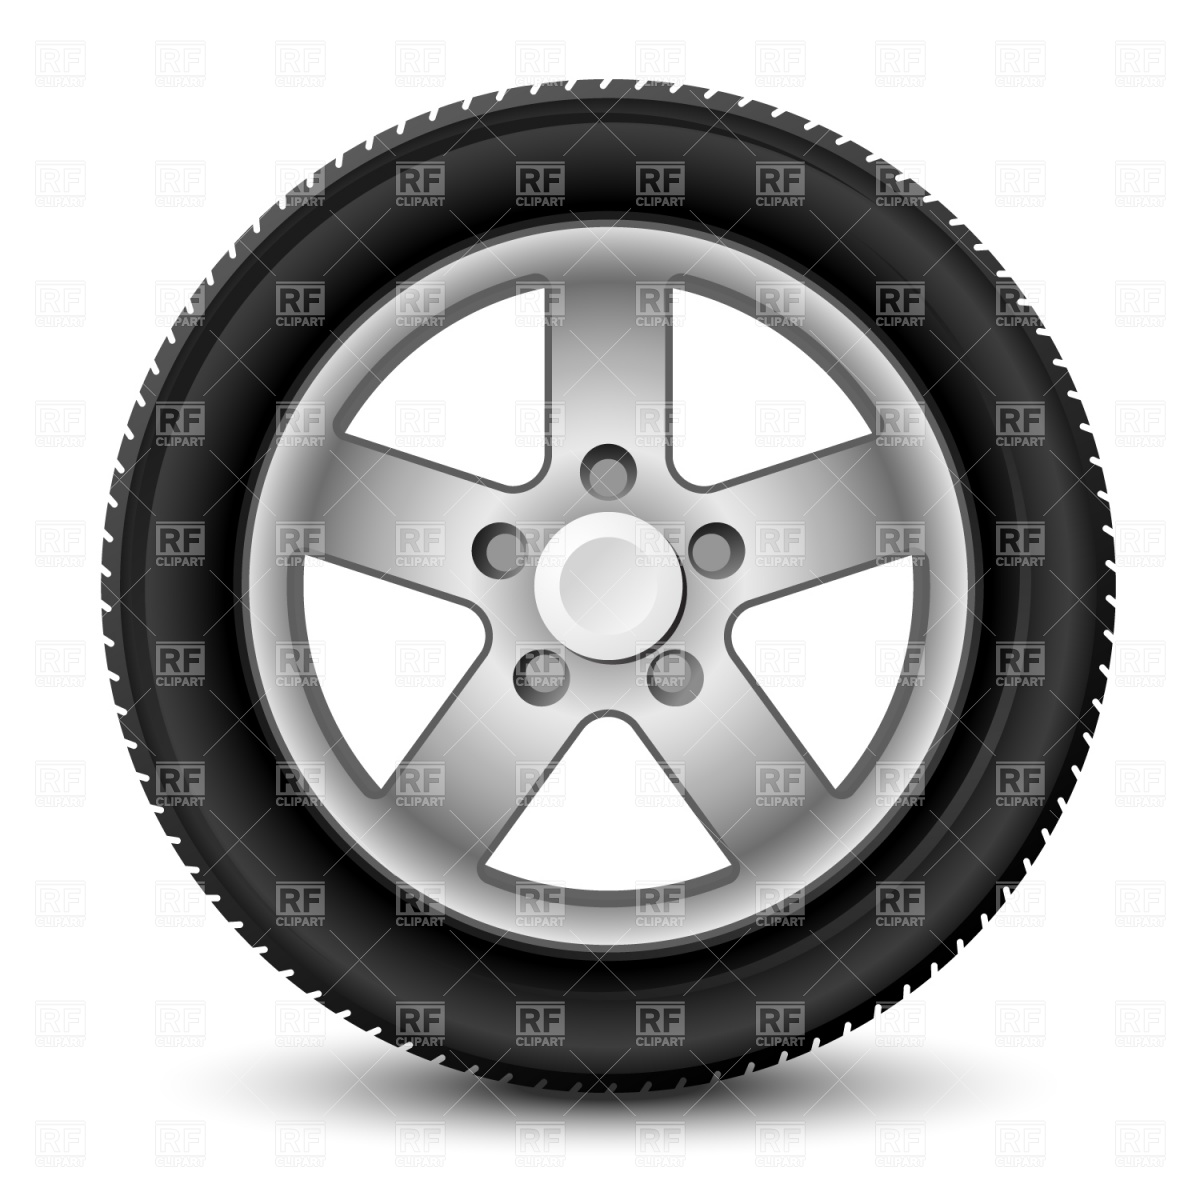 2001 Tire free clipart.